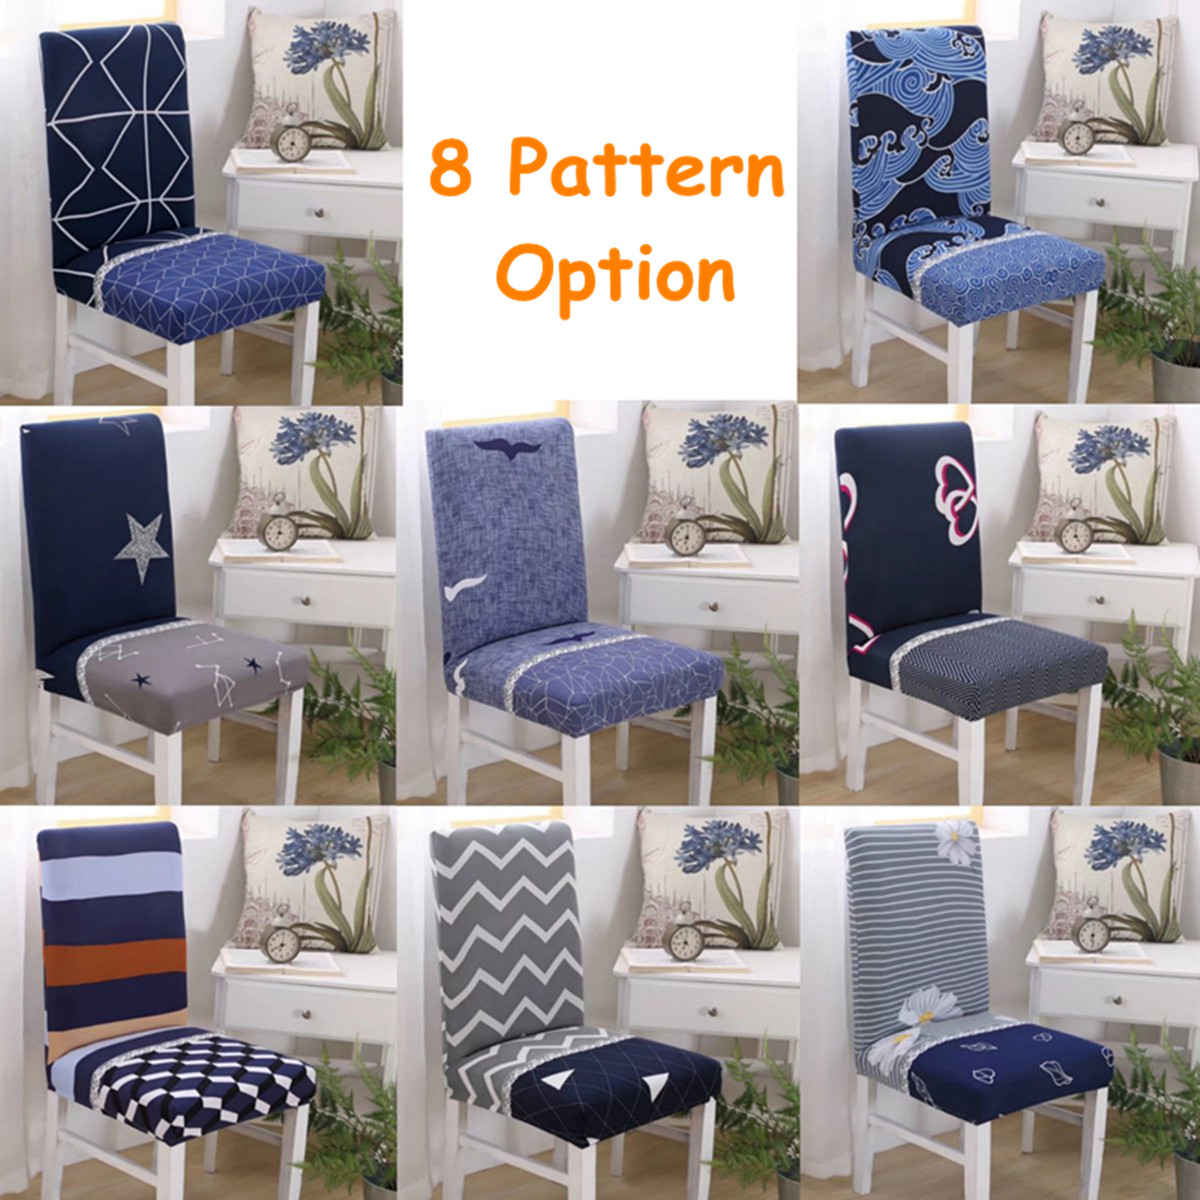 Chair Cover Patterns Details About 8 Pattern Stretch Dining Chair Cover Washable Removable Slipcover Seat Cover